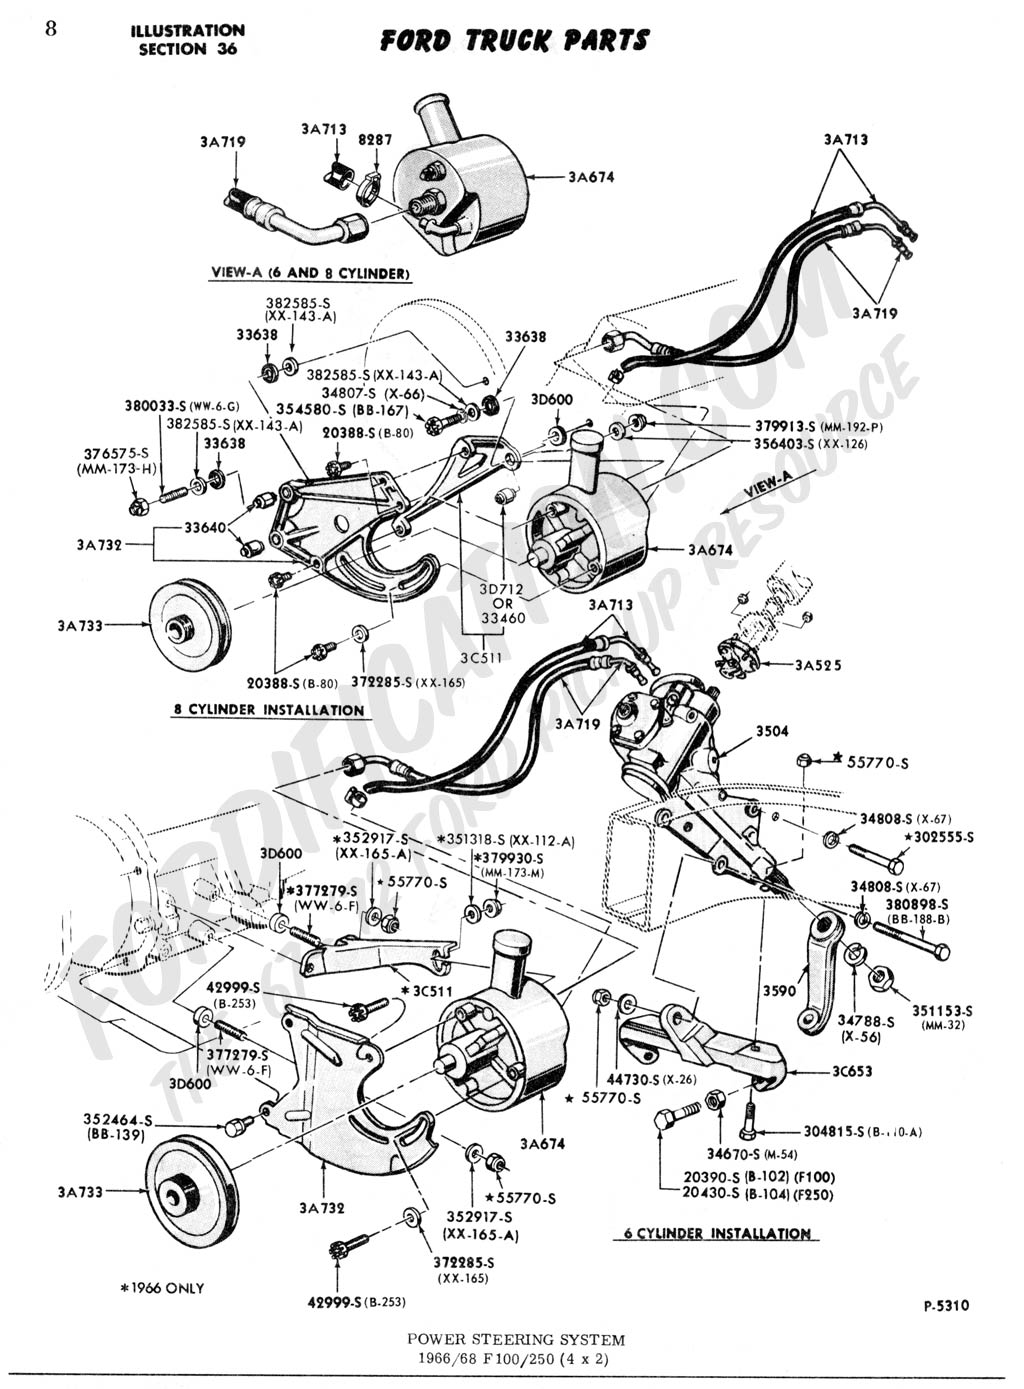 1966 kenworth w900 wiring diagram  1966  free engine image